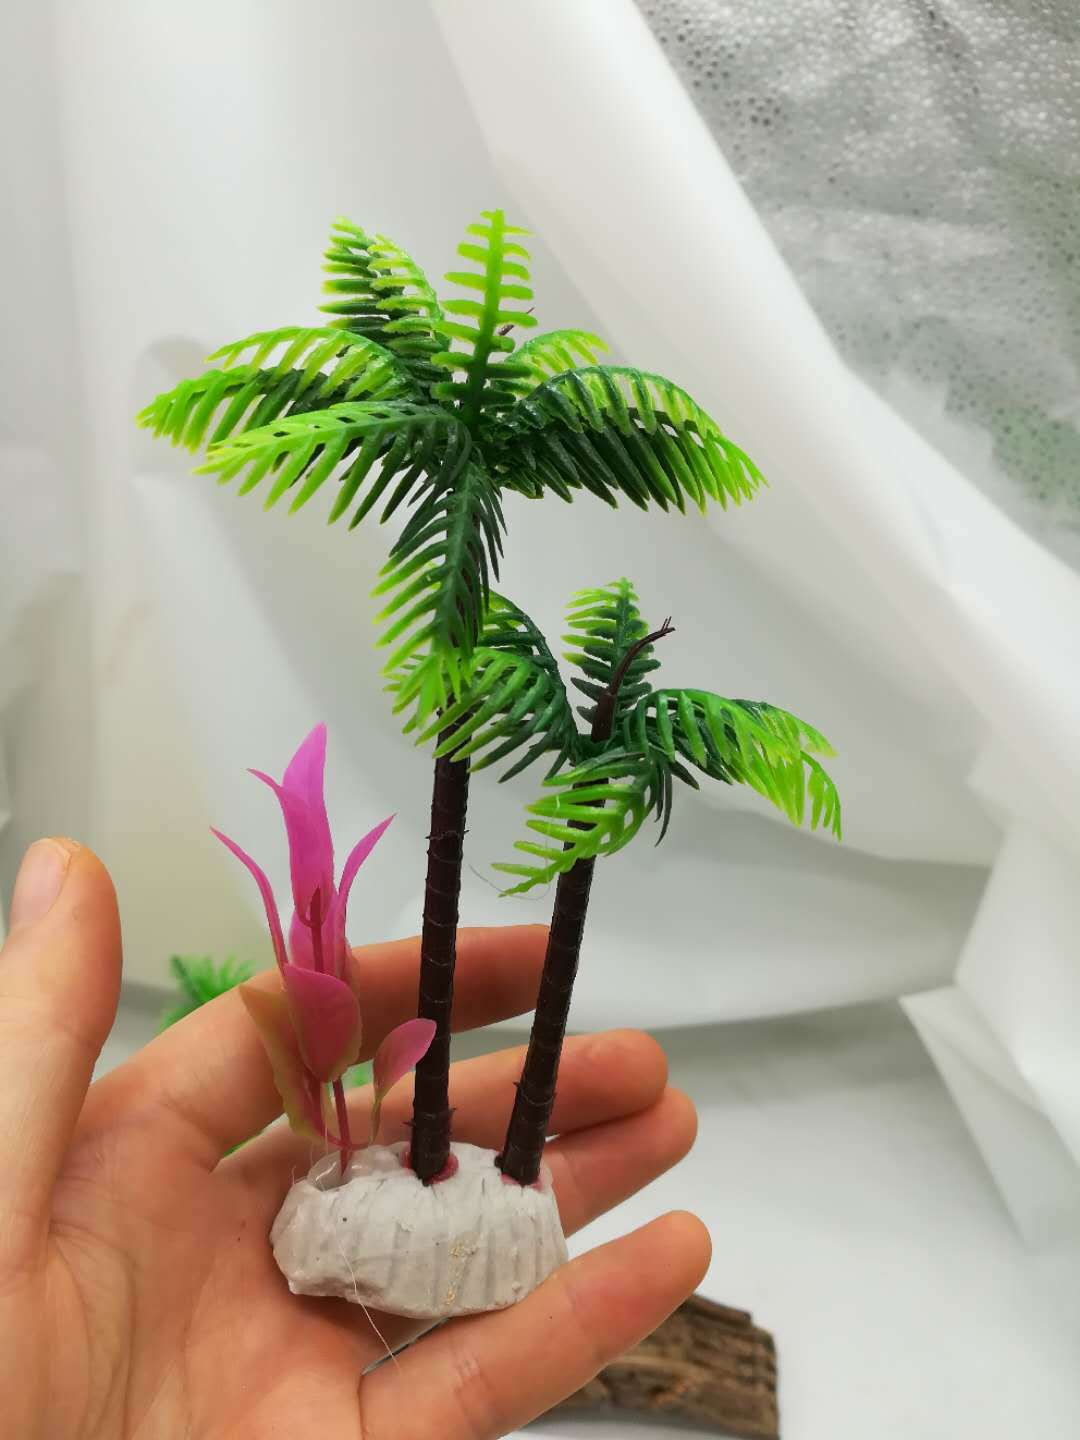 Simulation Water Grass Coconut Tree Large Water Grass Realistic And Beautiful Fish Tank Landscaping Aquarium Decorations